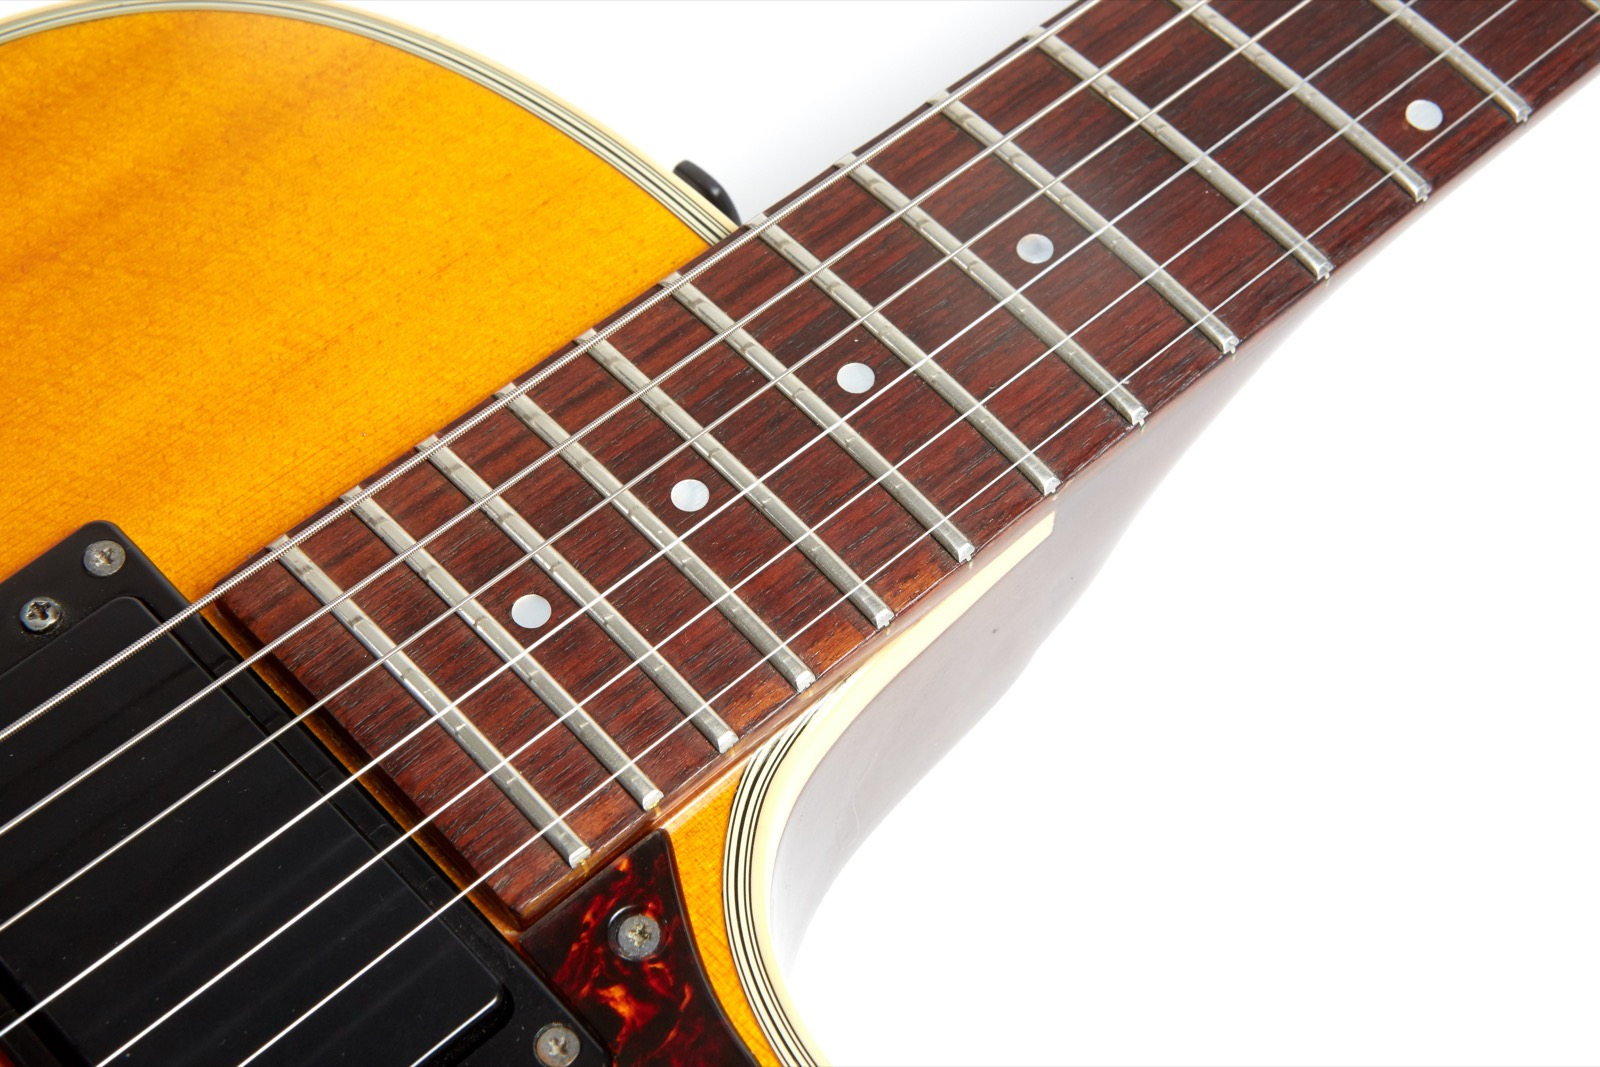 Guild Nightbird I Gads Ramblings Kent Armstrong Pickup Neck Wiring Diagram Fretboard And